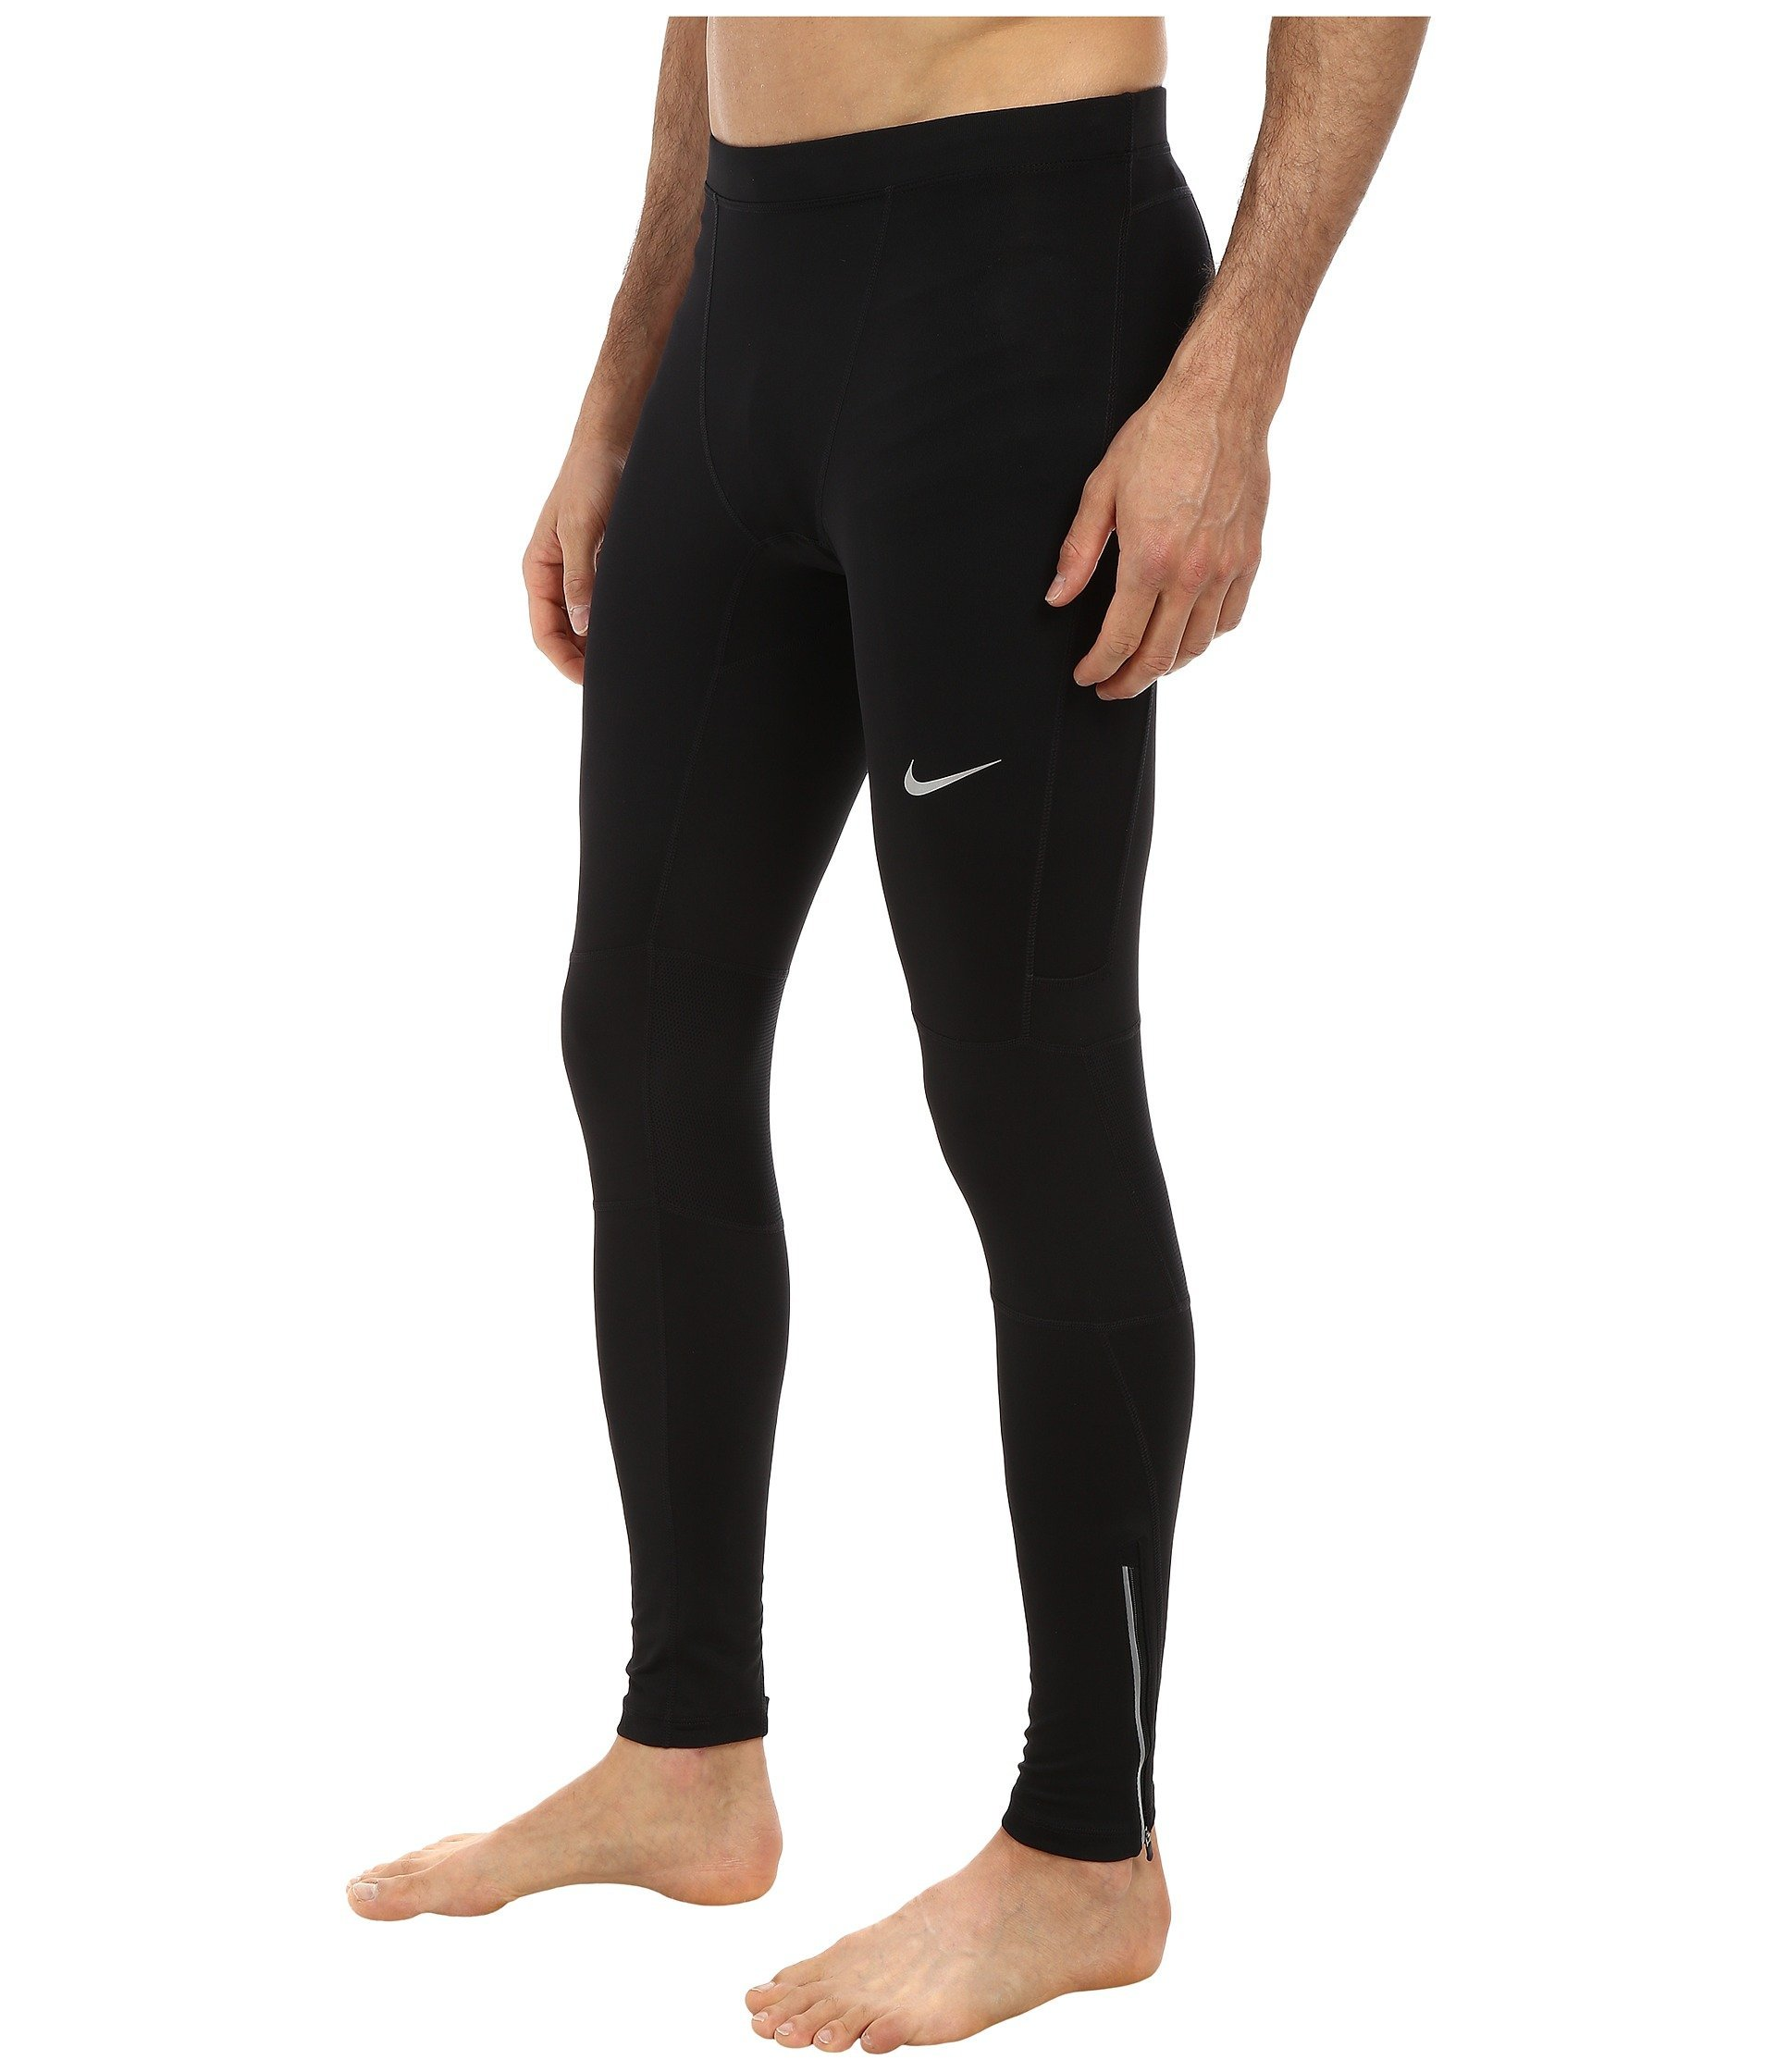 Nike Men's Power Essential Running Tights by Nike (Image #6)